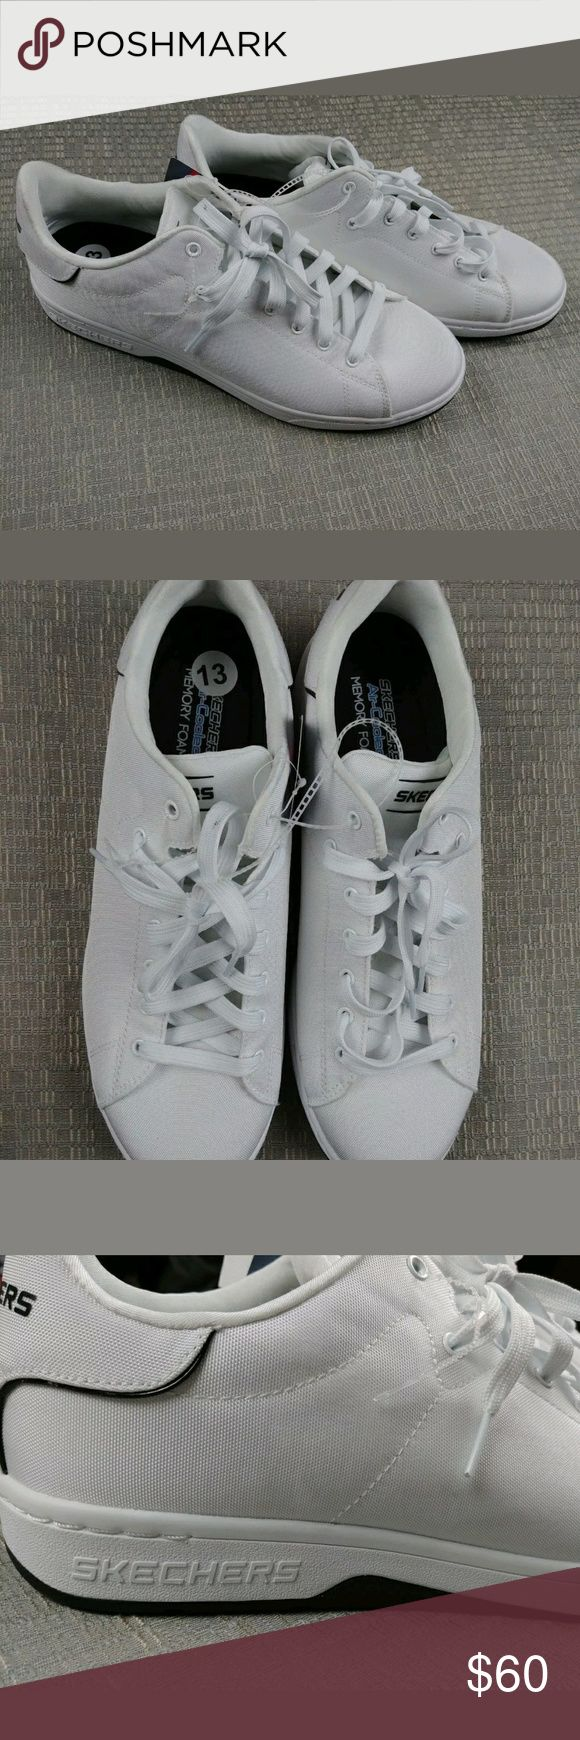 Skechers White Lace Up Memory Foam Air Cool Sz 13   New With Tag   SKECHERS  MEN'S SHOES  LACE  WHITE  SIZE 13 Skechers Shoes Sneakers